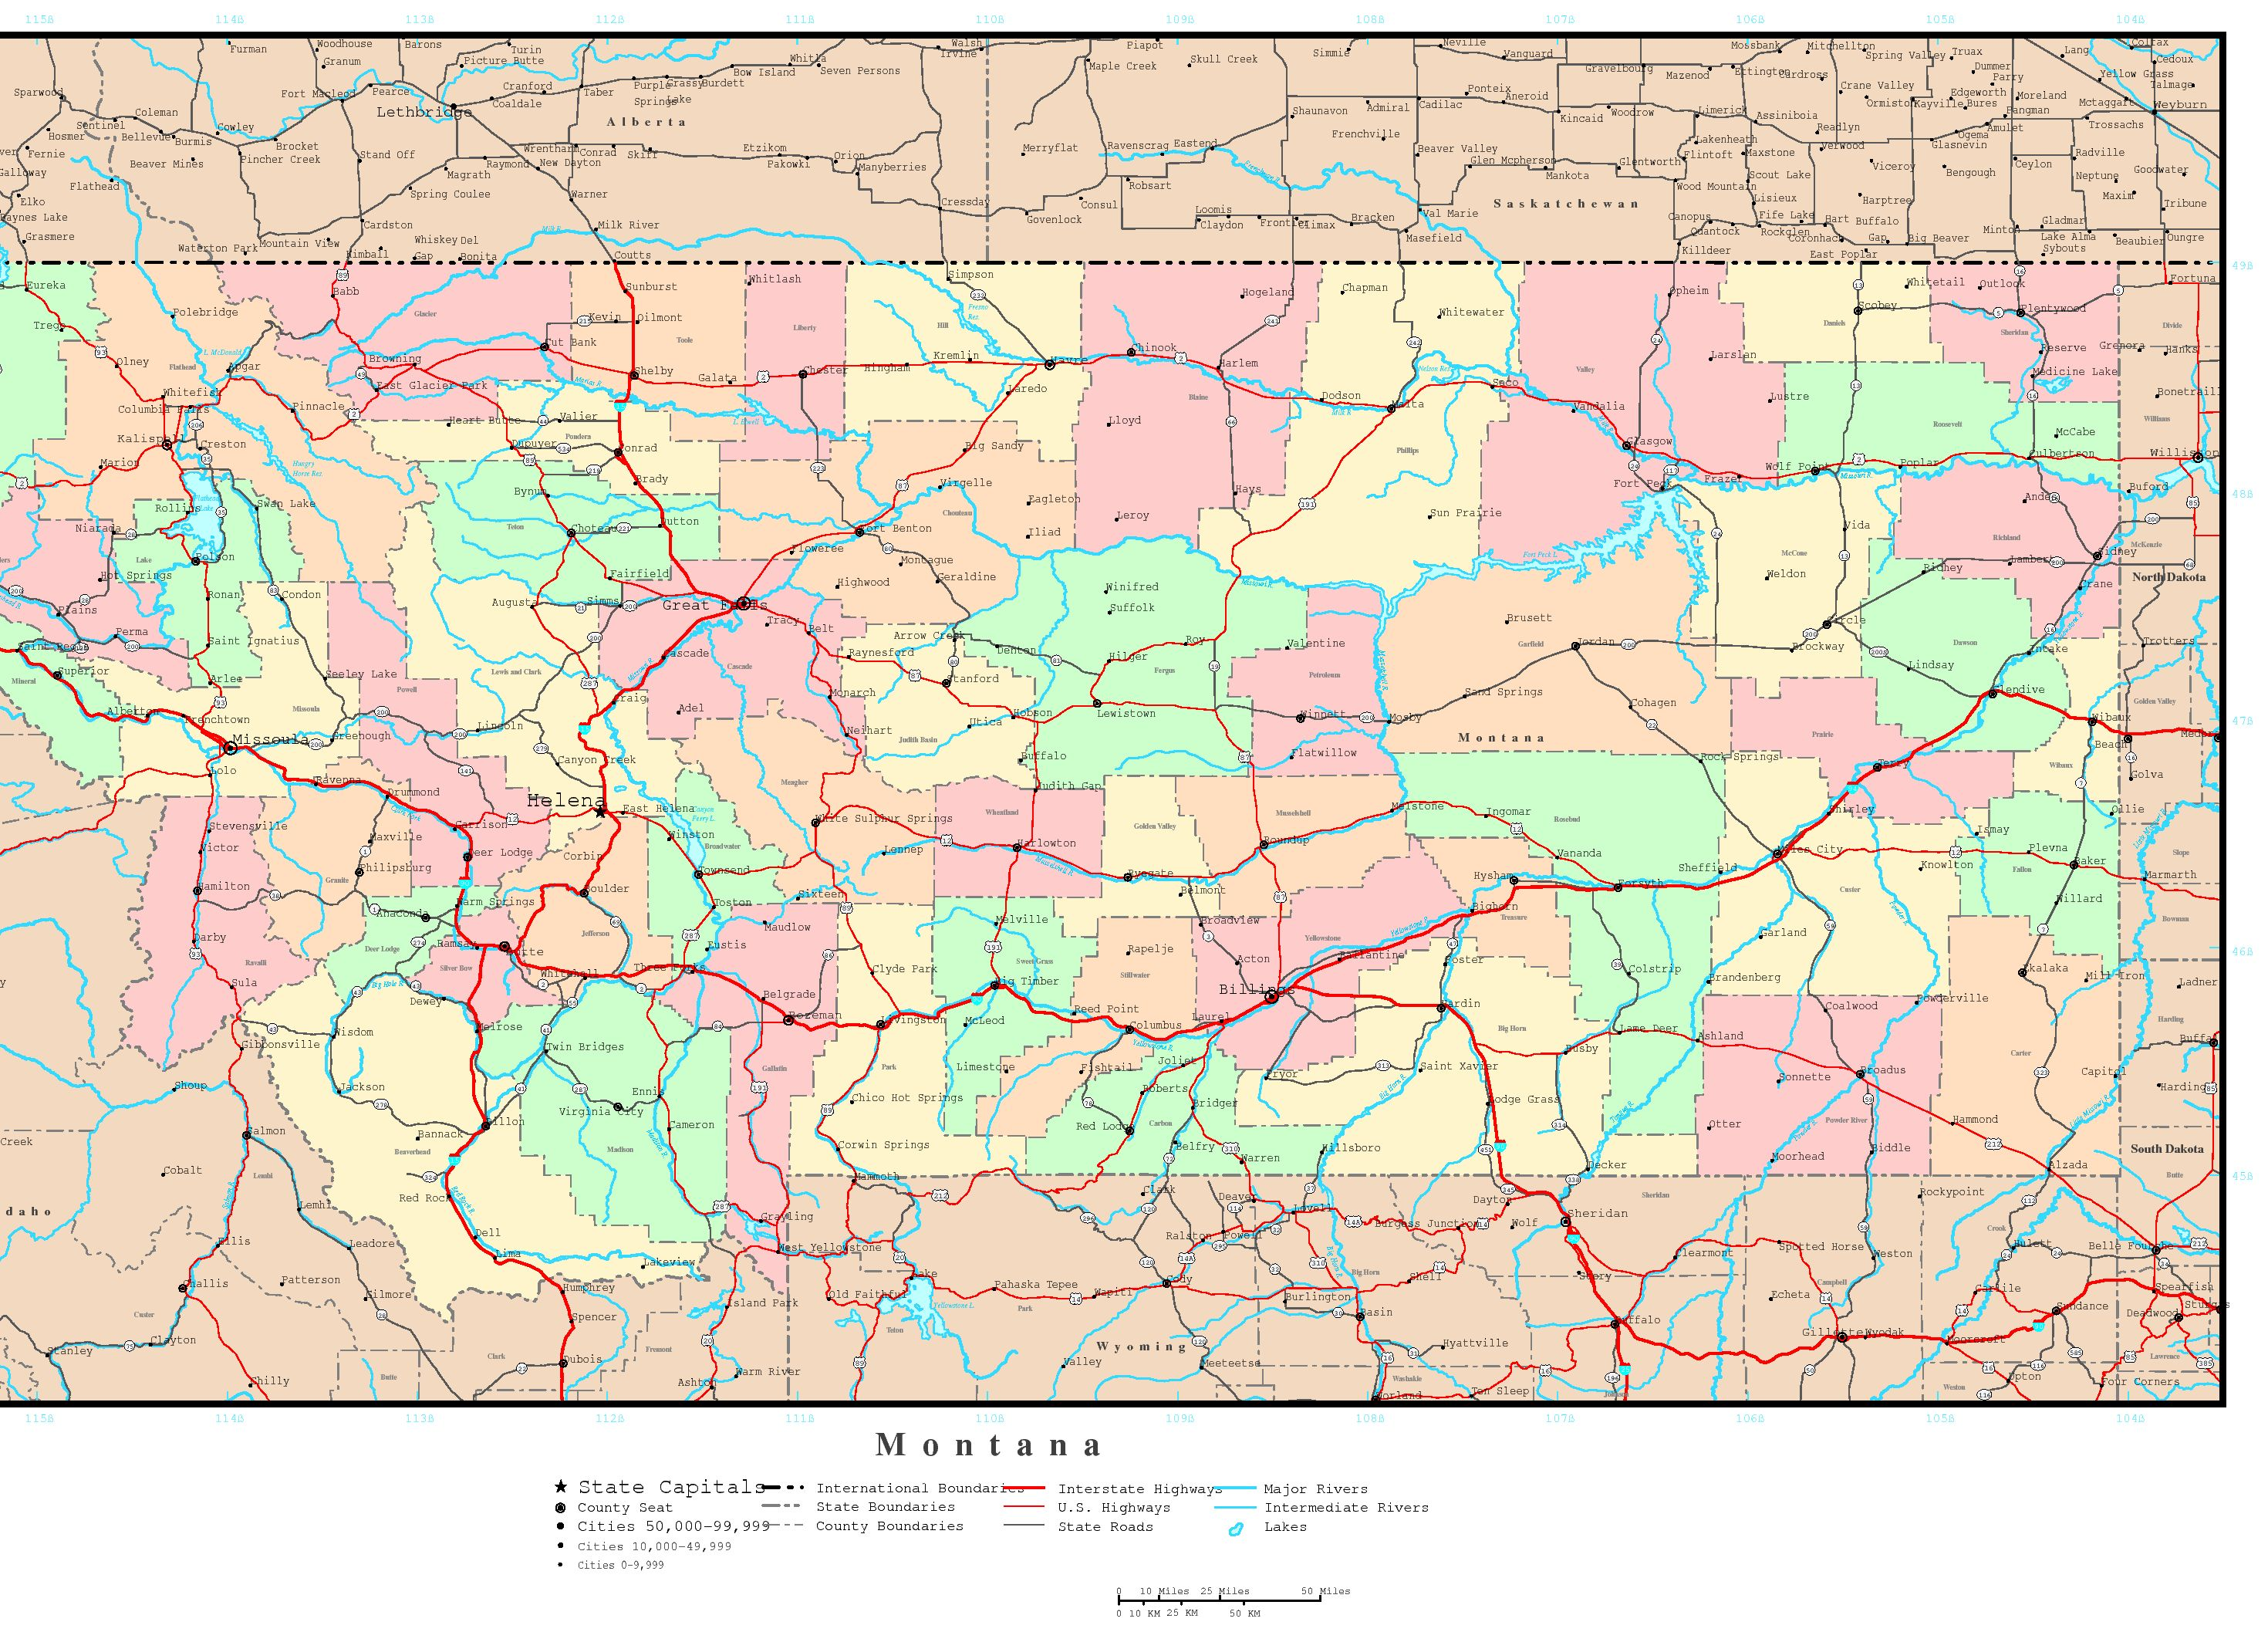 Montana Map With Cities And Counties Bnhspine Com